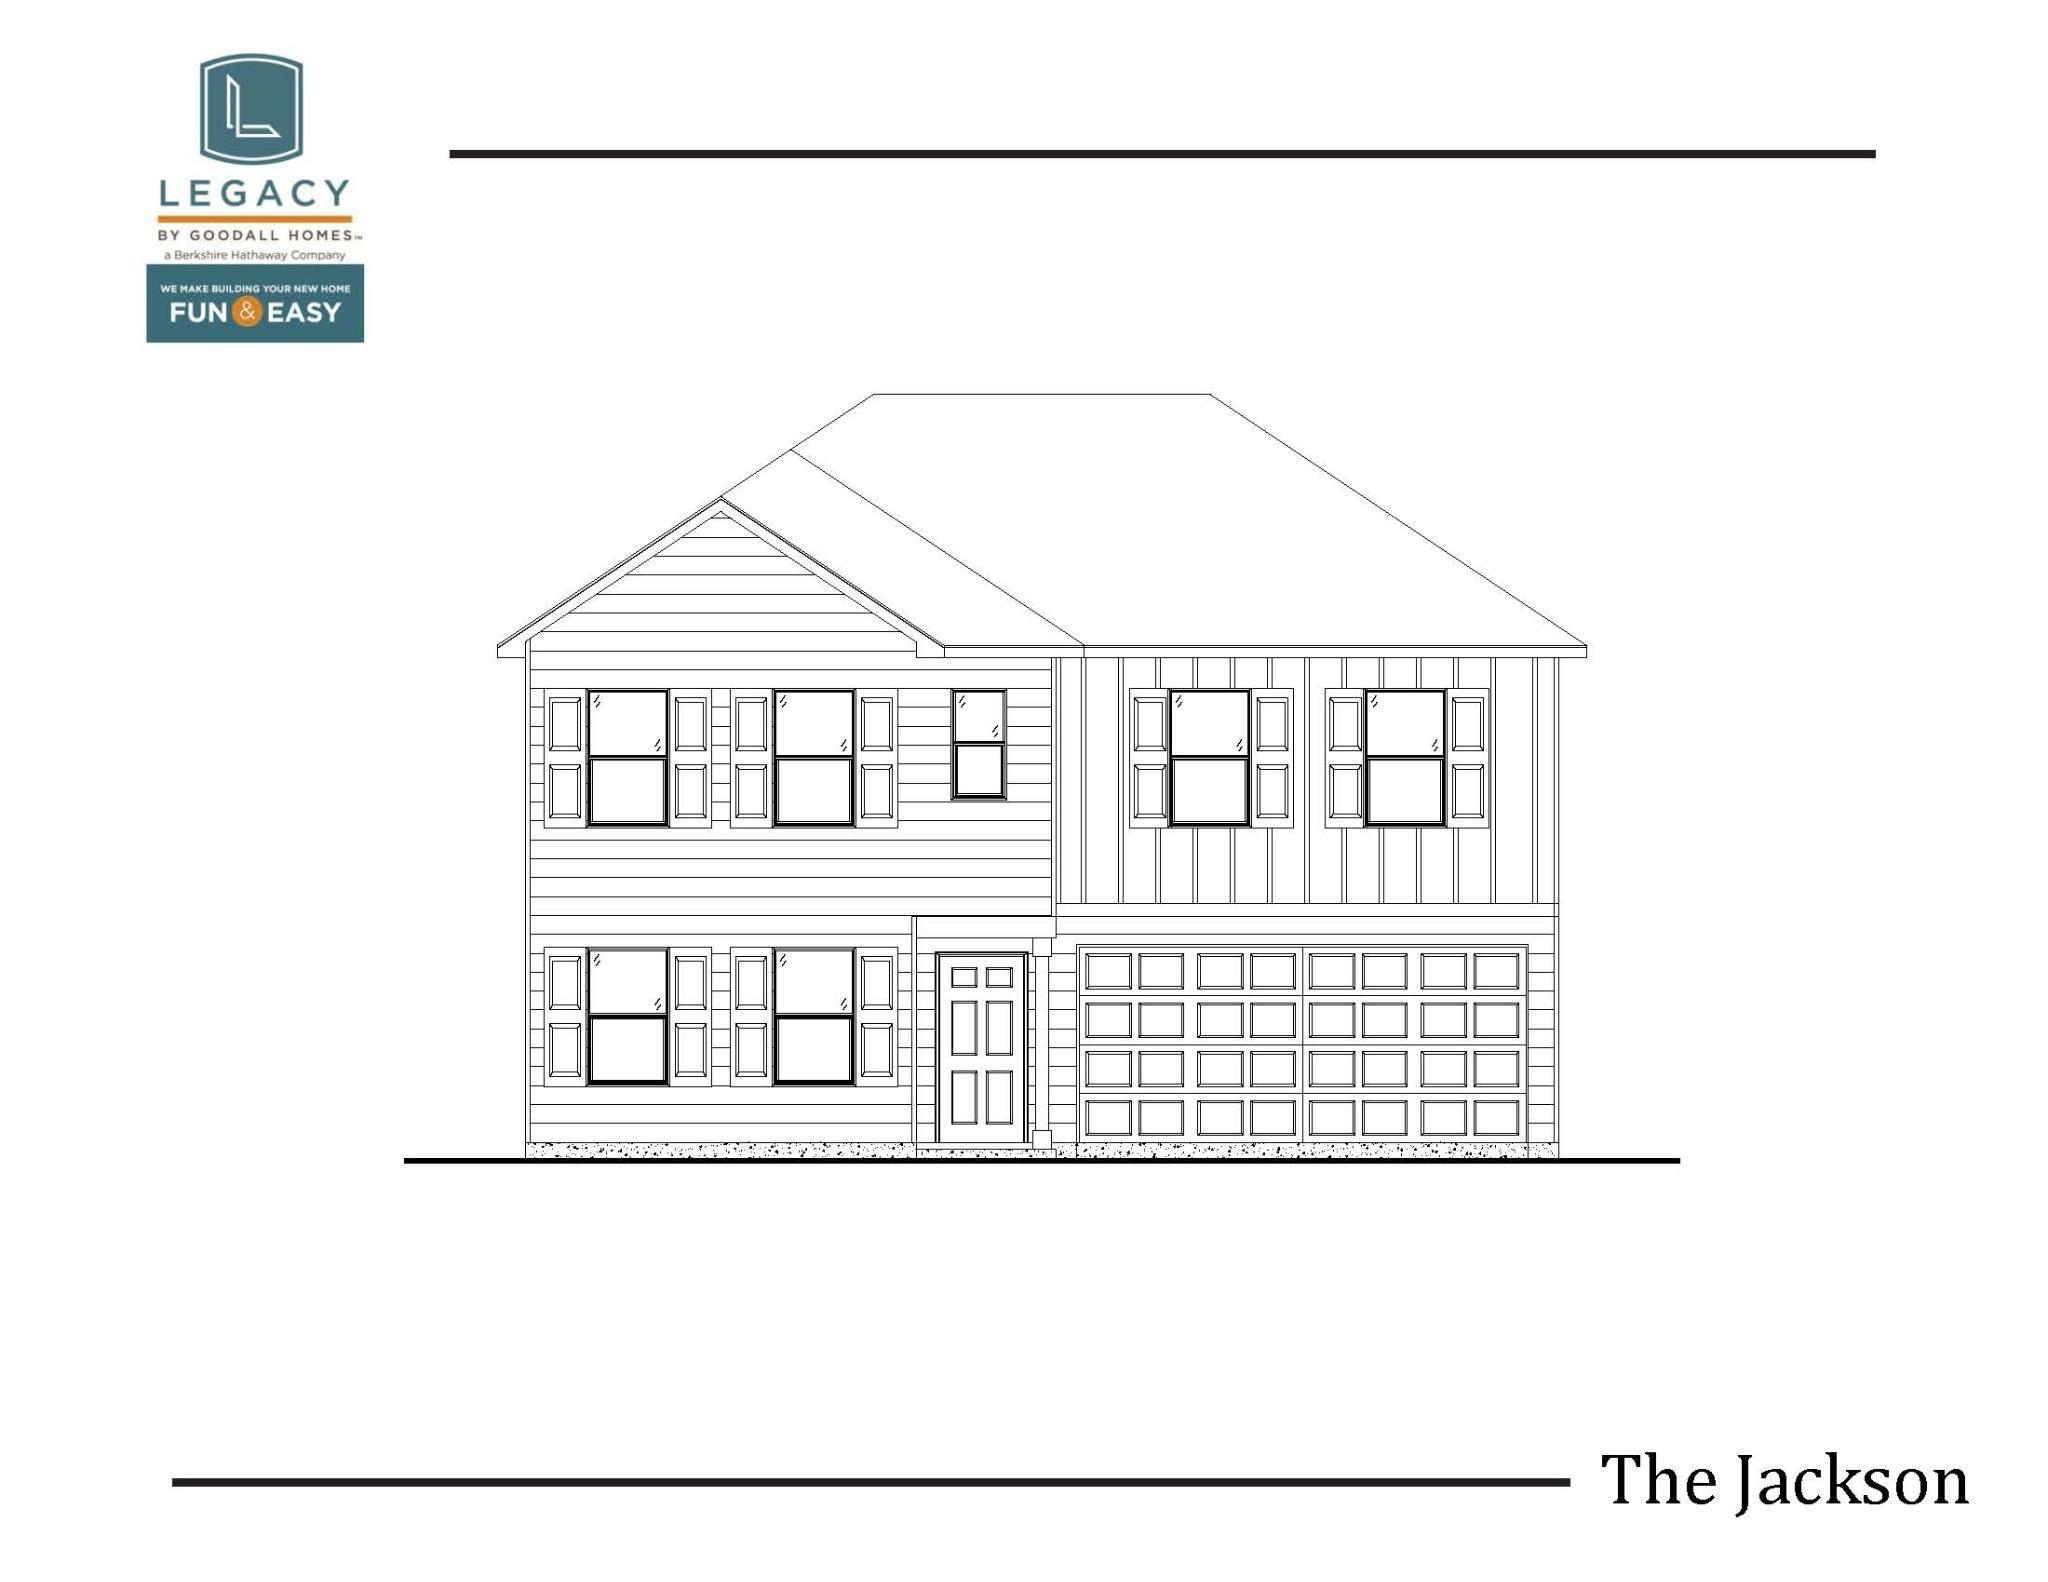 Exterior featured in The Jackson - Legacy By Goodall Homes in Owensboro, KY